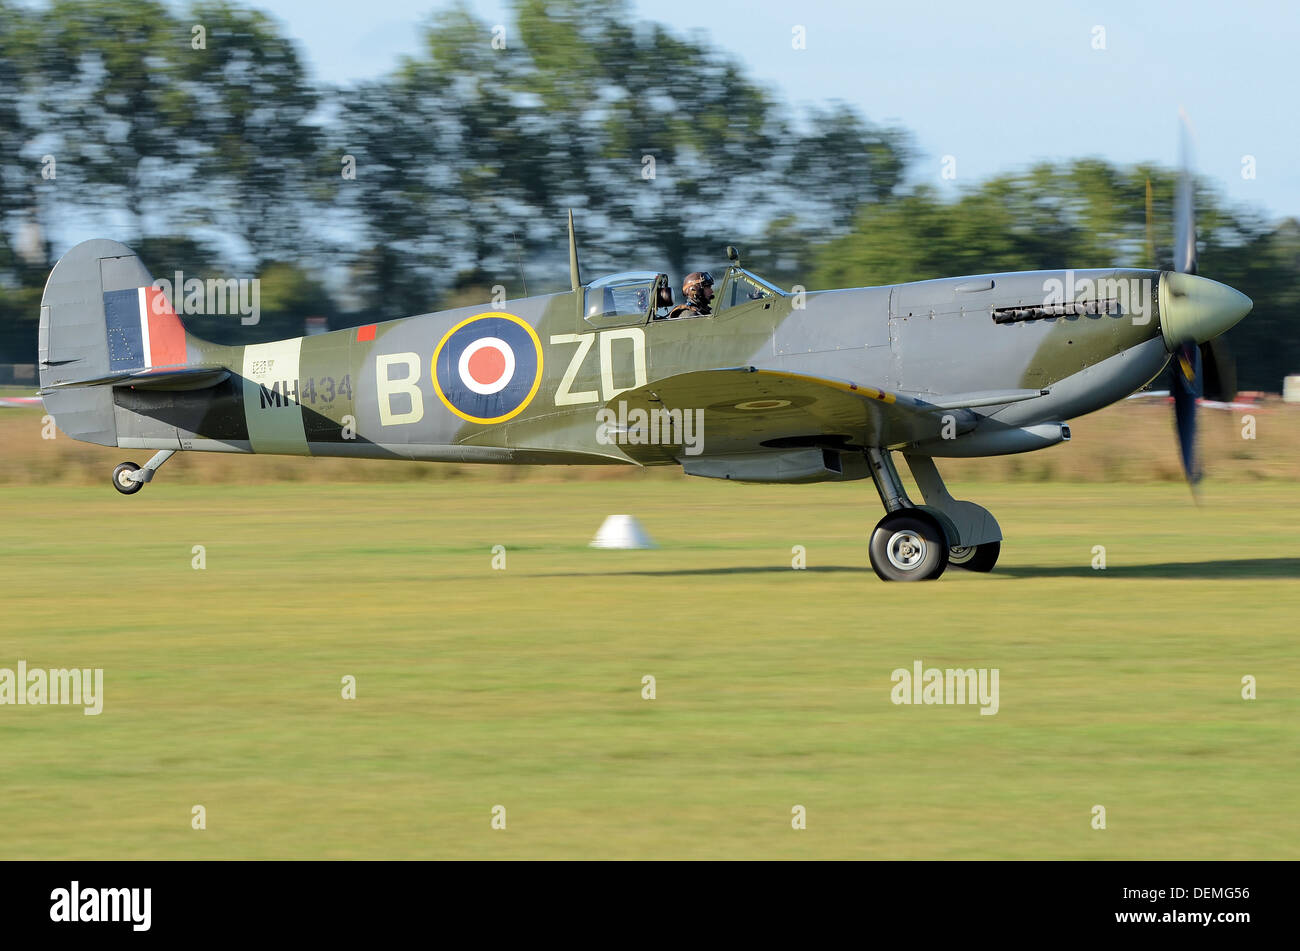 Supermarine Spitfire Mark IX MH434 taking off to display from a grass airfield. MH434 has starred in many films and on tv - Stock Image